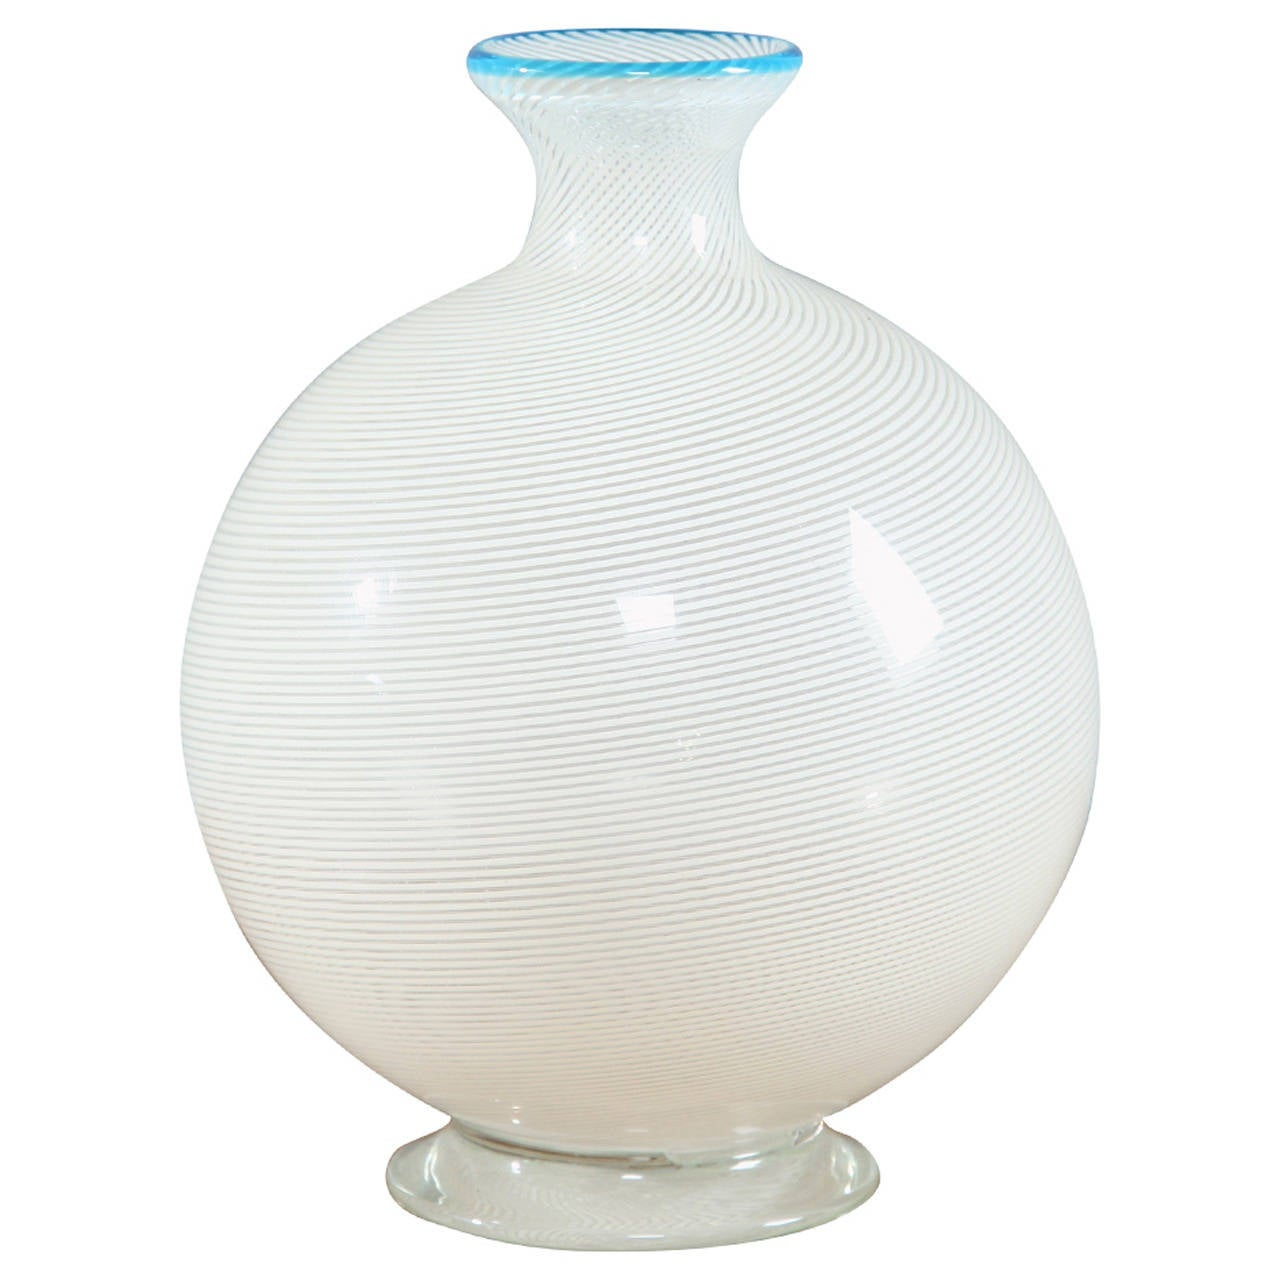 white and turquoise murano glass vase by vistosi italy 1950s for sale at 1stdibs. Black Bedroom Furniture Sets. Home Design Ideas